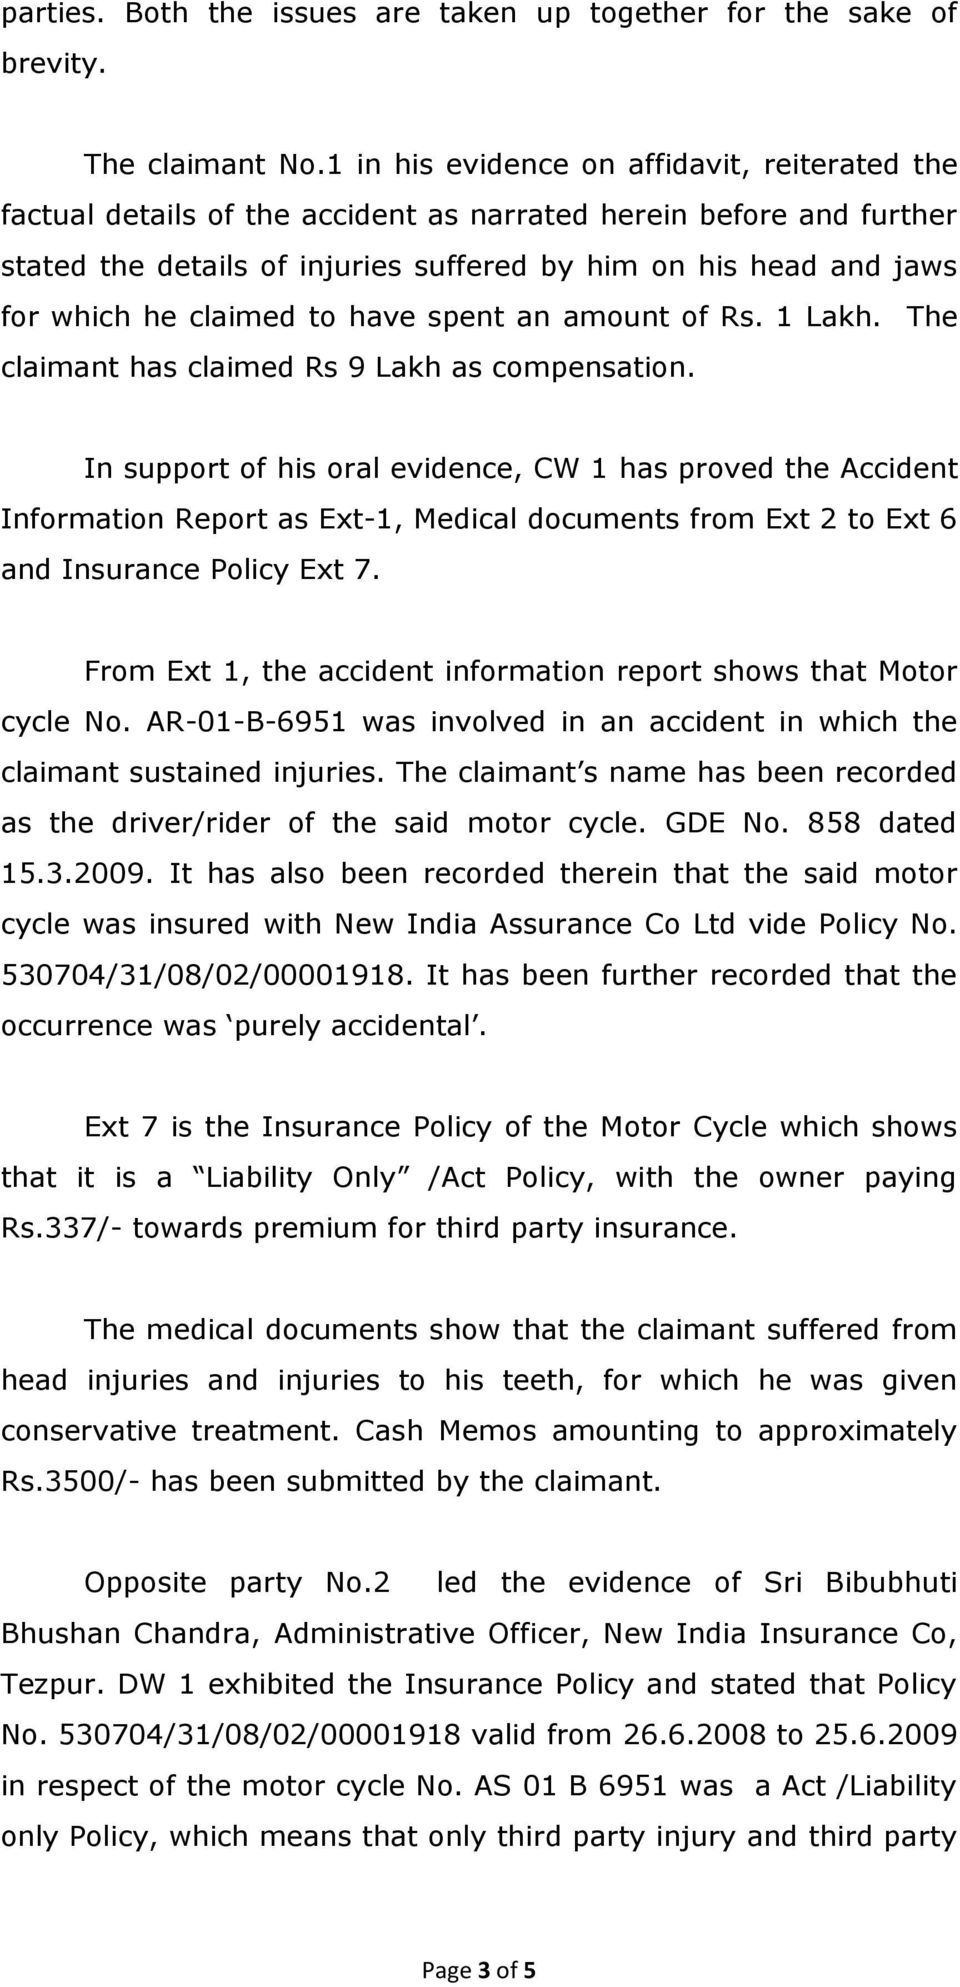 claimed to have spent an amount of Rs. 1 Lakh. The claimant has claimed Rs 9 Lakh as compensation.